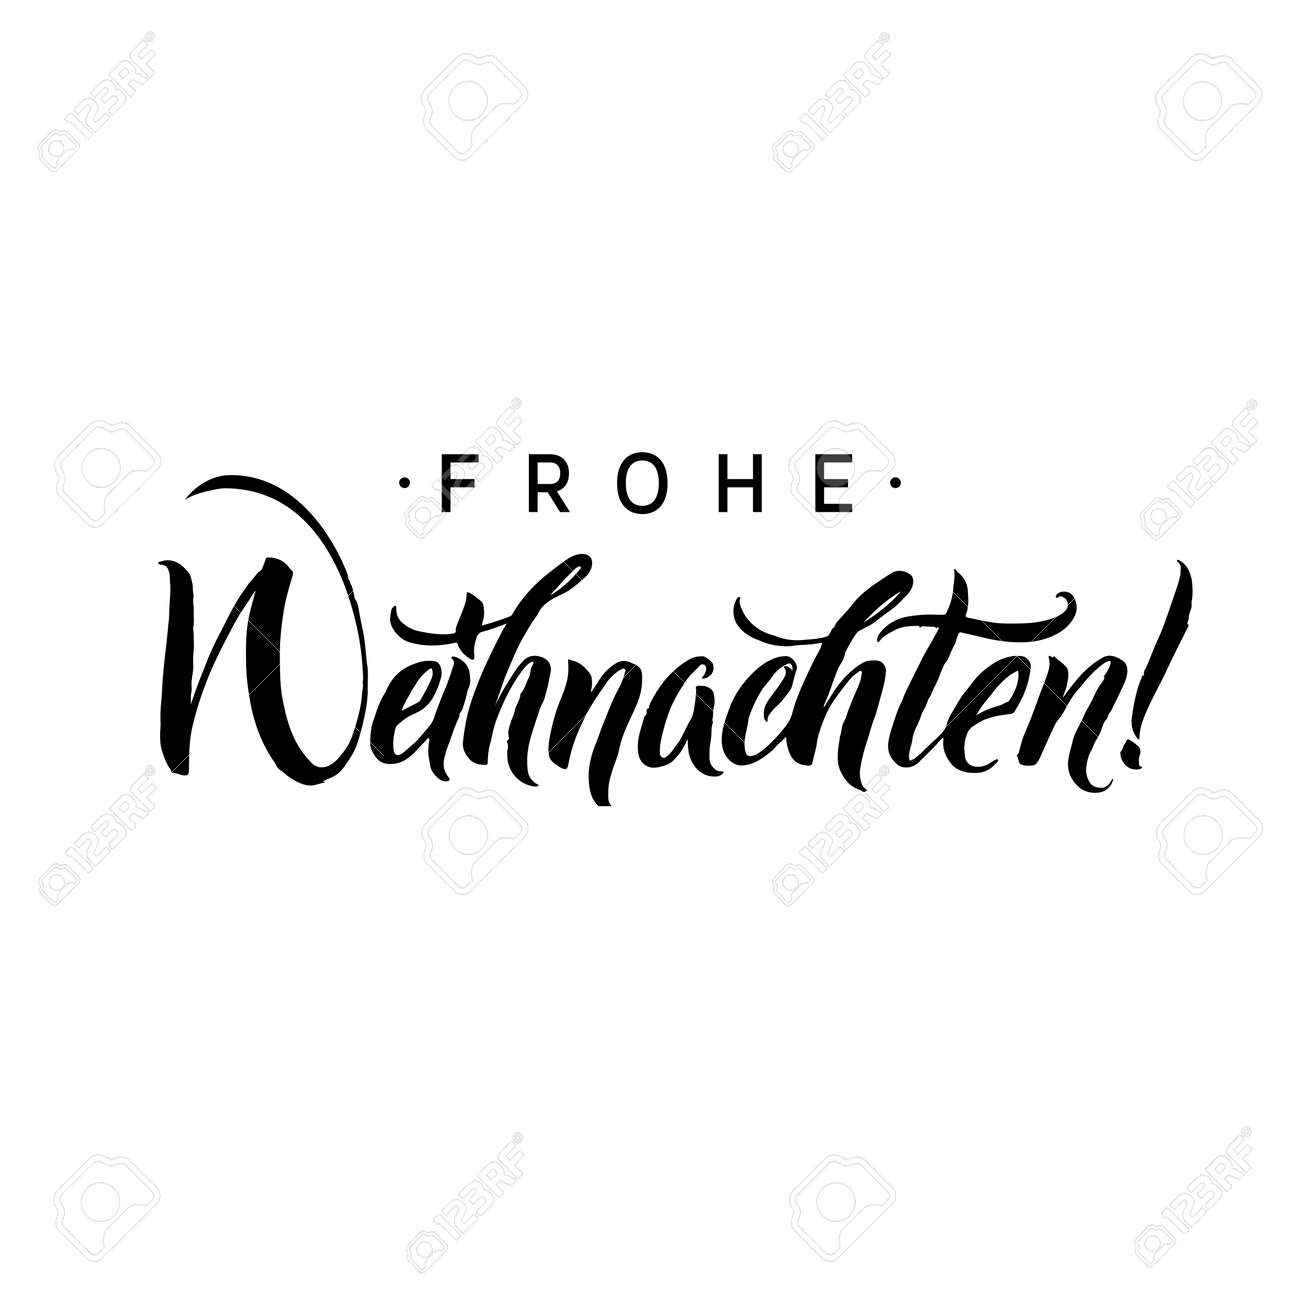 Font Kalligraphie Frohe Weihnachten Merry Christmas Calligraphy In German Greeting